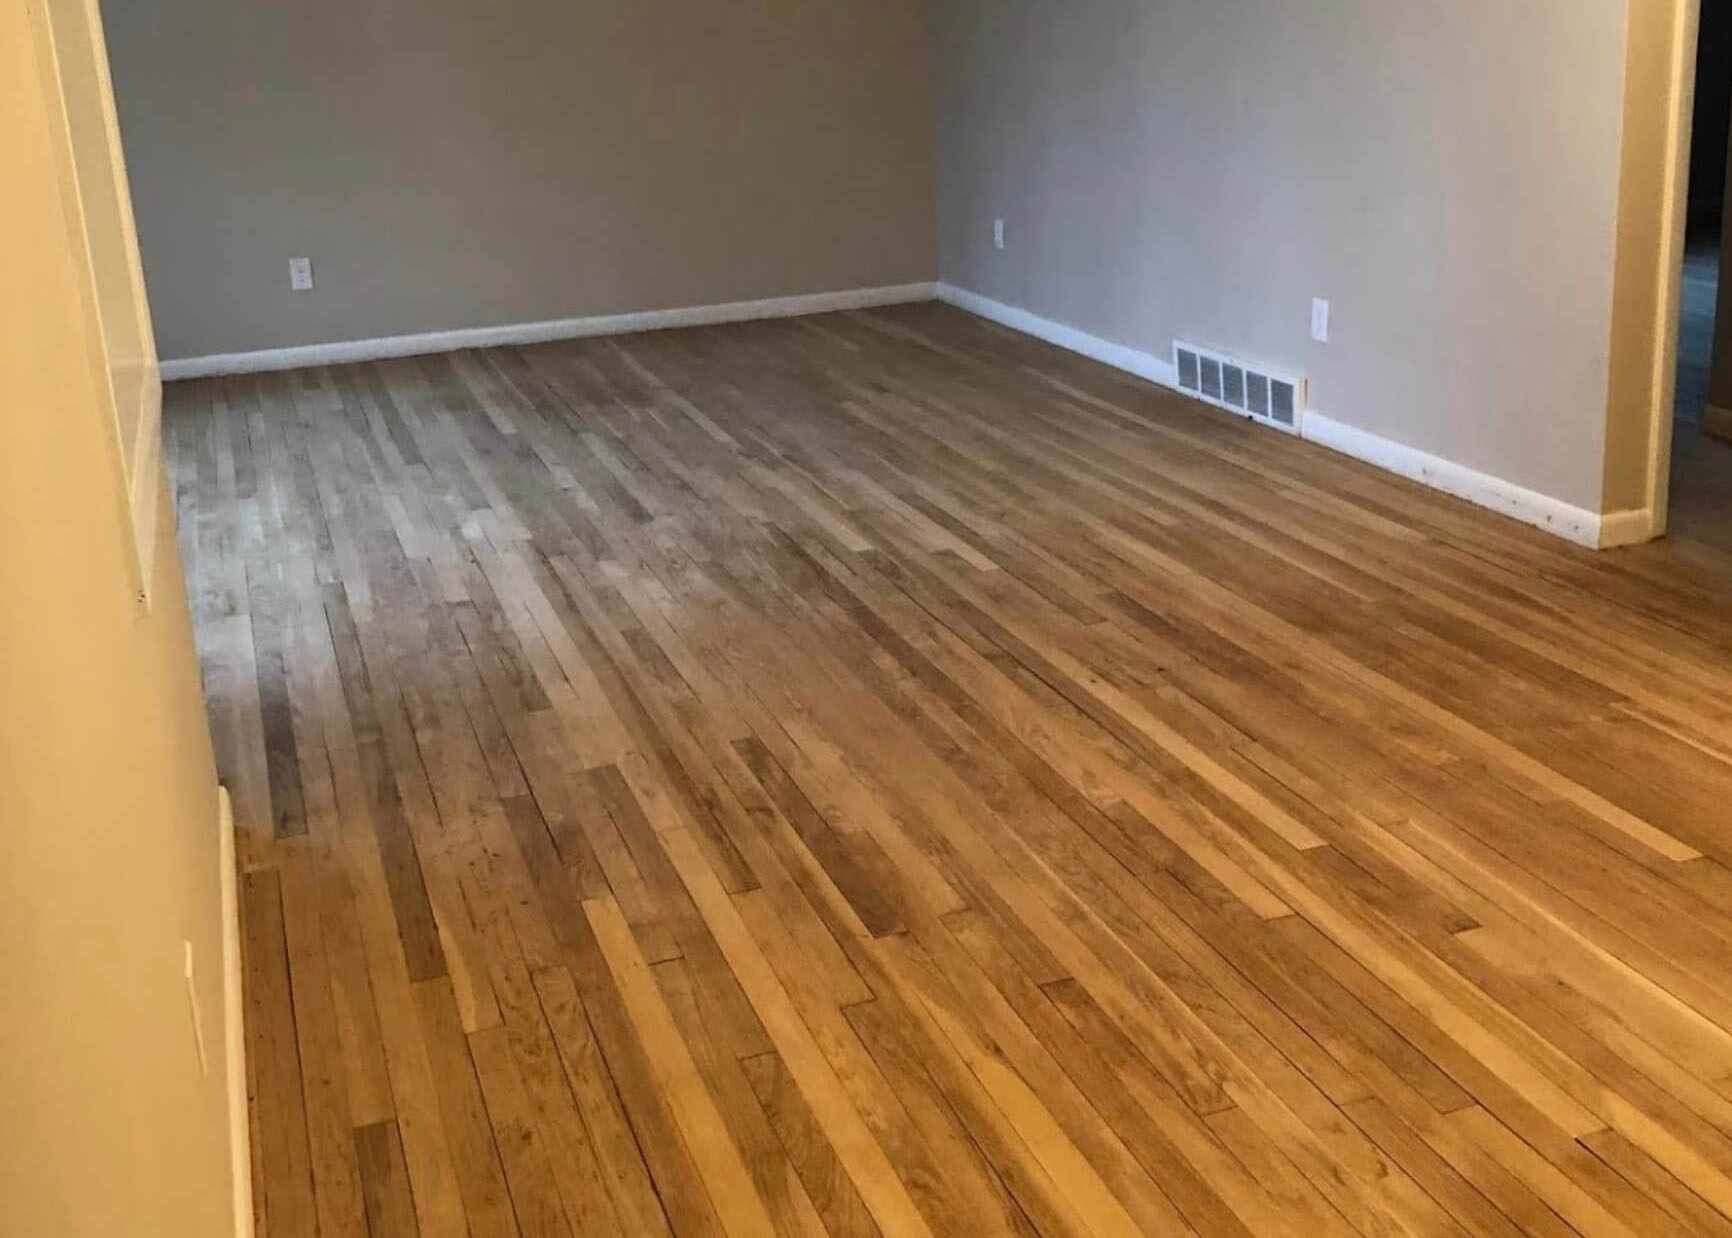 hardwood floor that's been scratched up and has minor damage